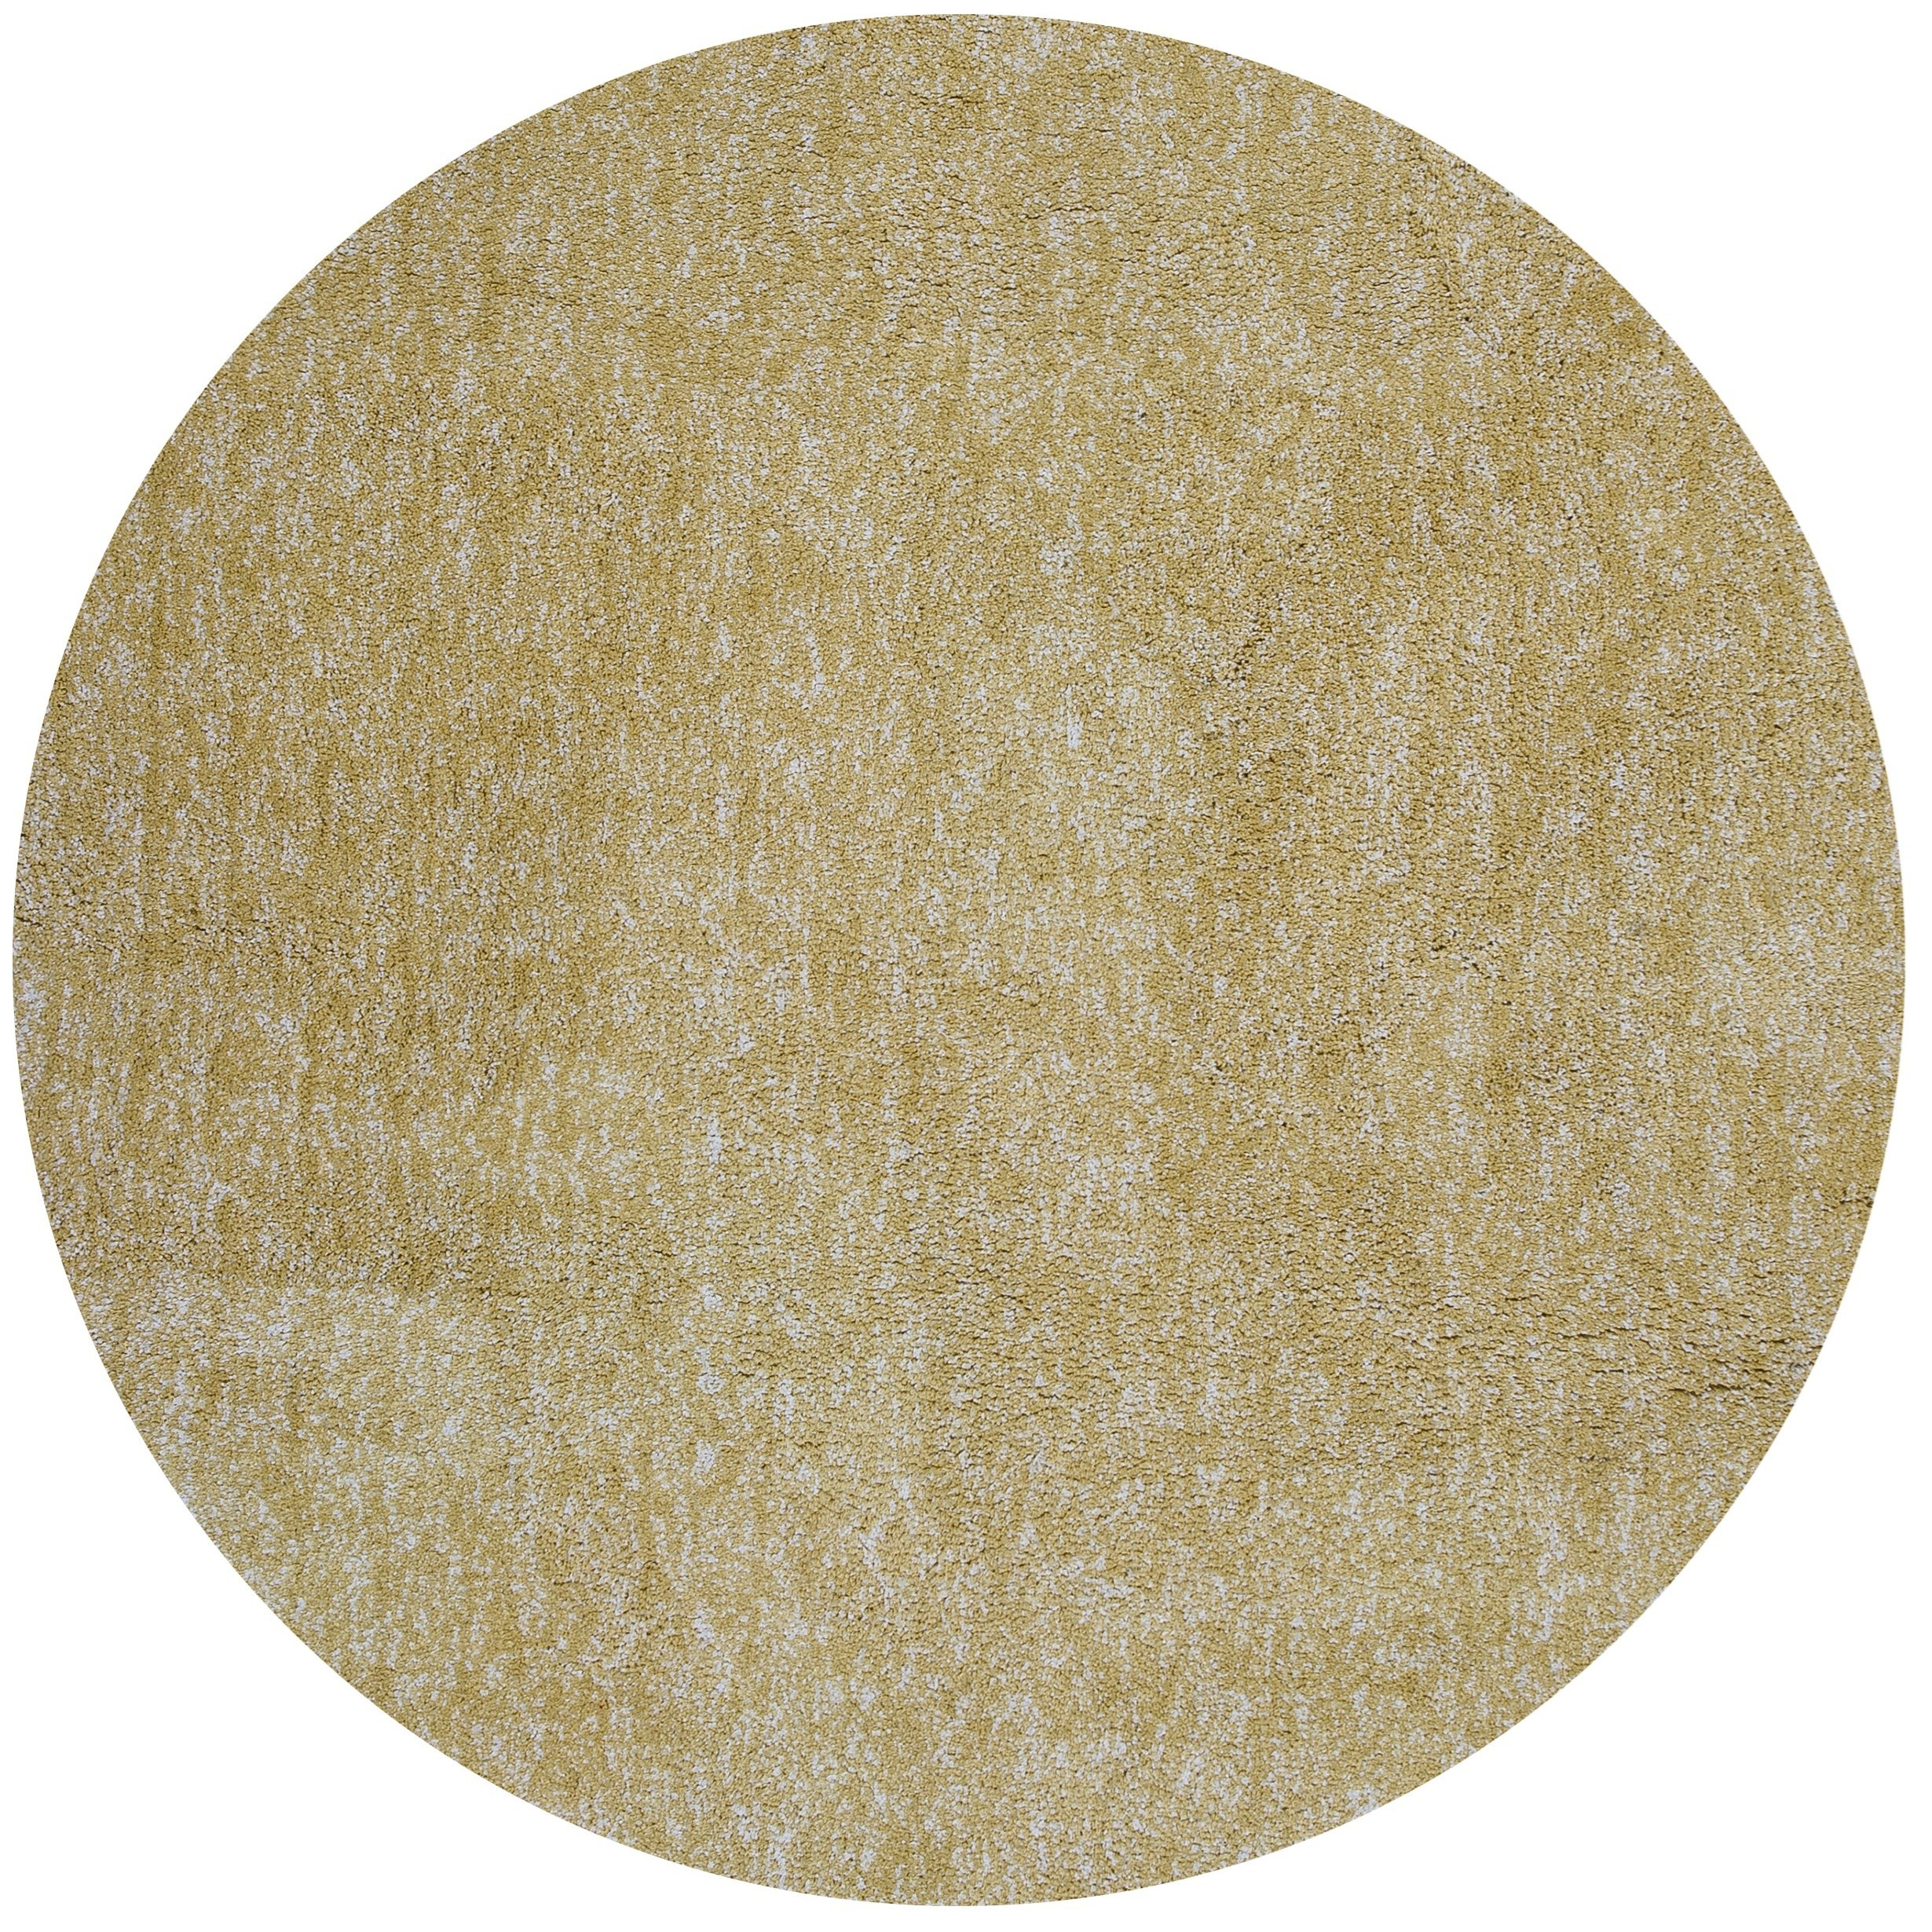 Bliss 6' X 6' Yellow Heather Shag Area Rug by Kas at Zak's Home